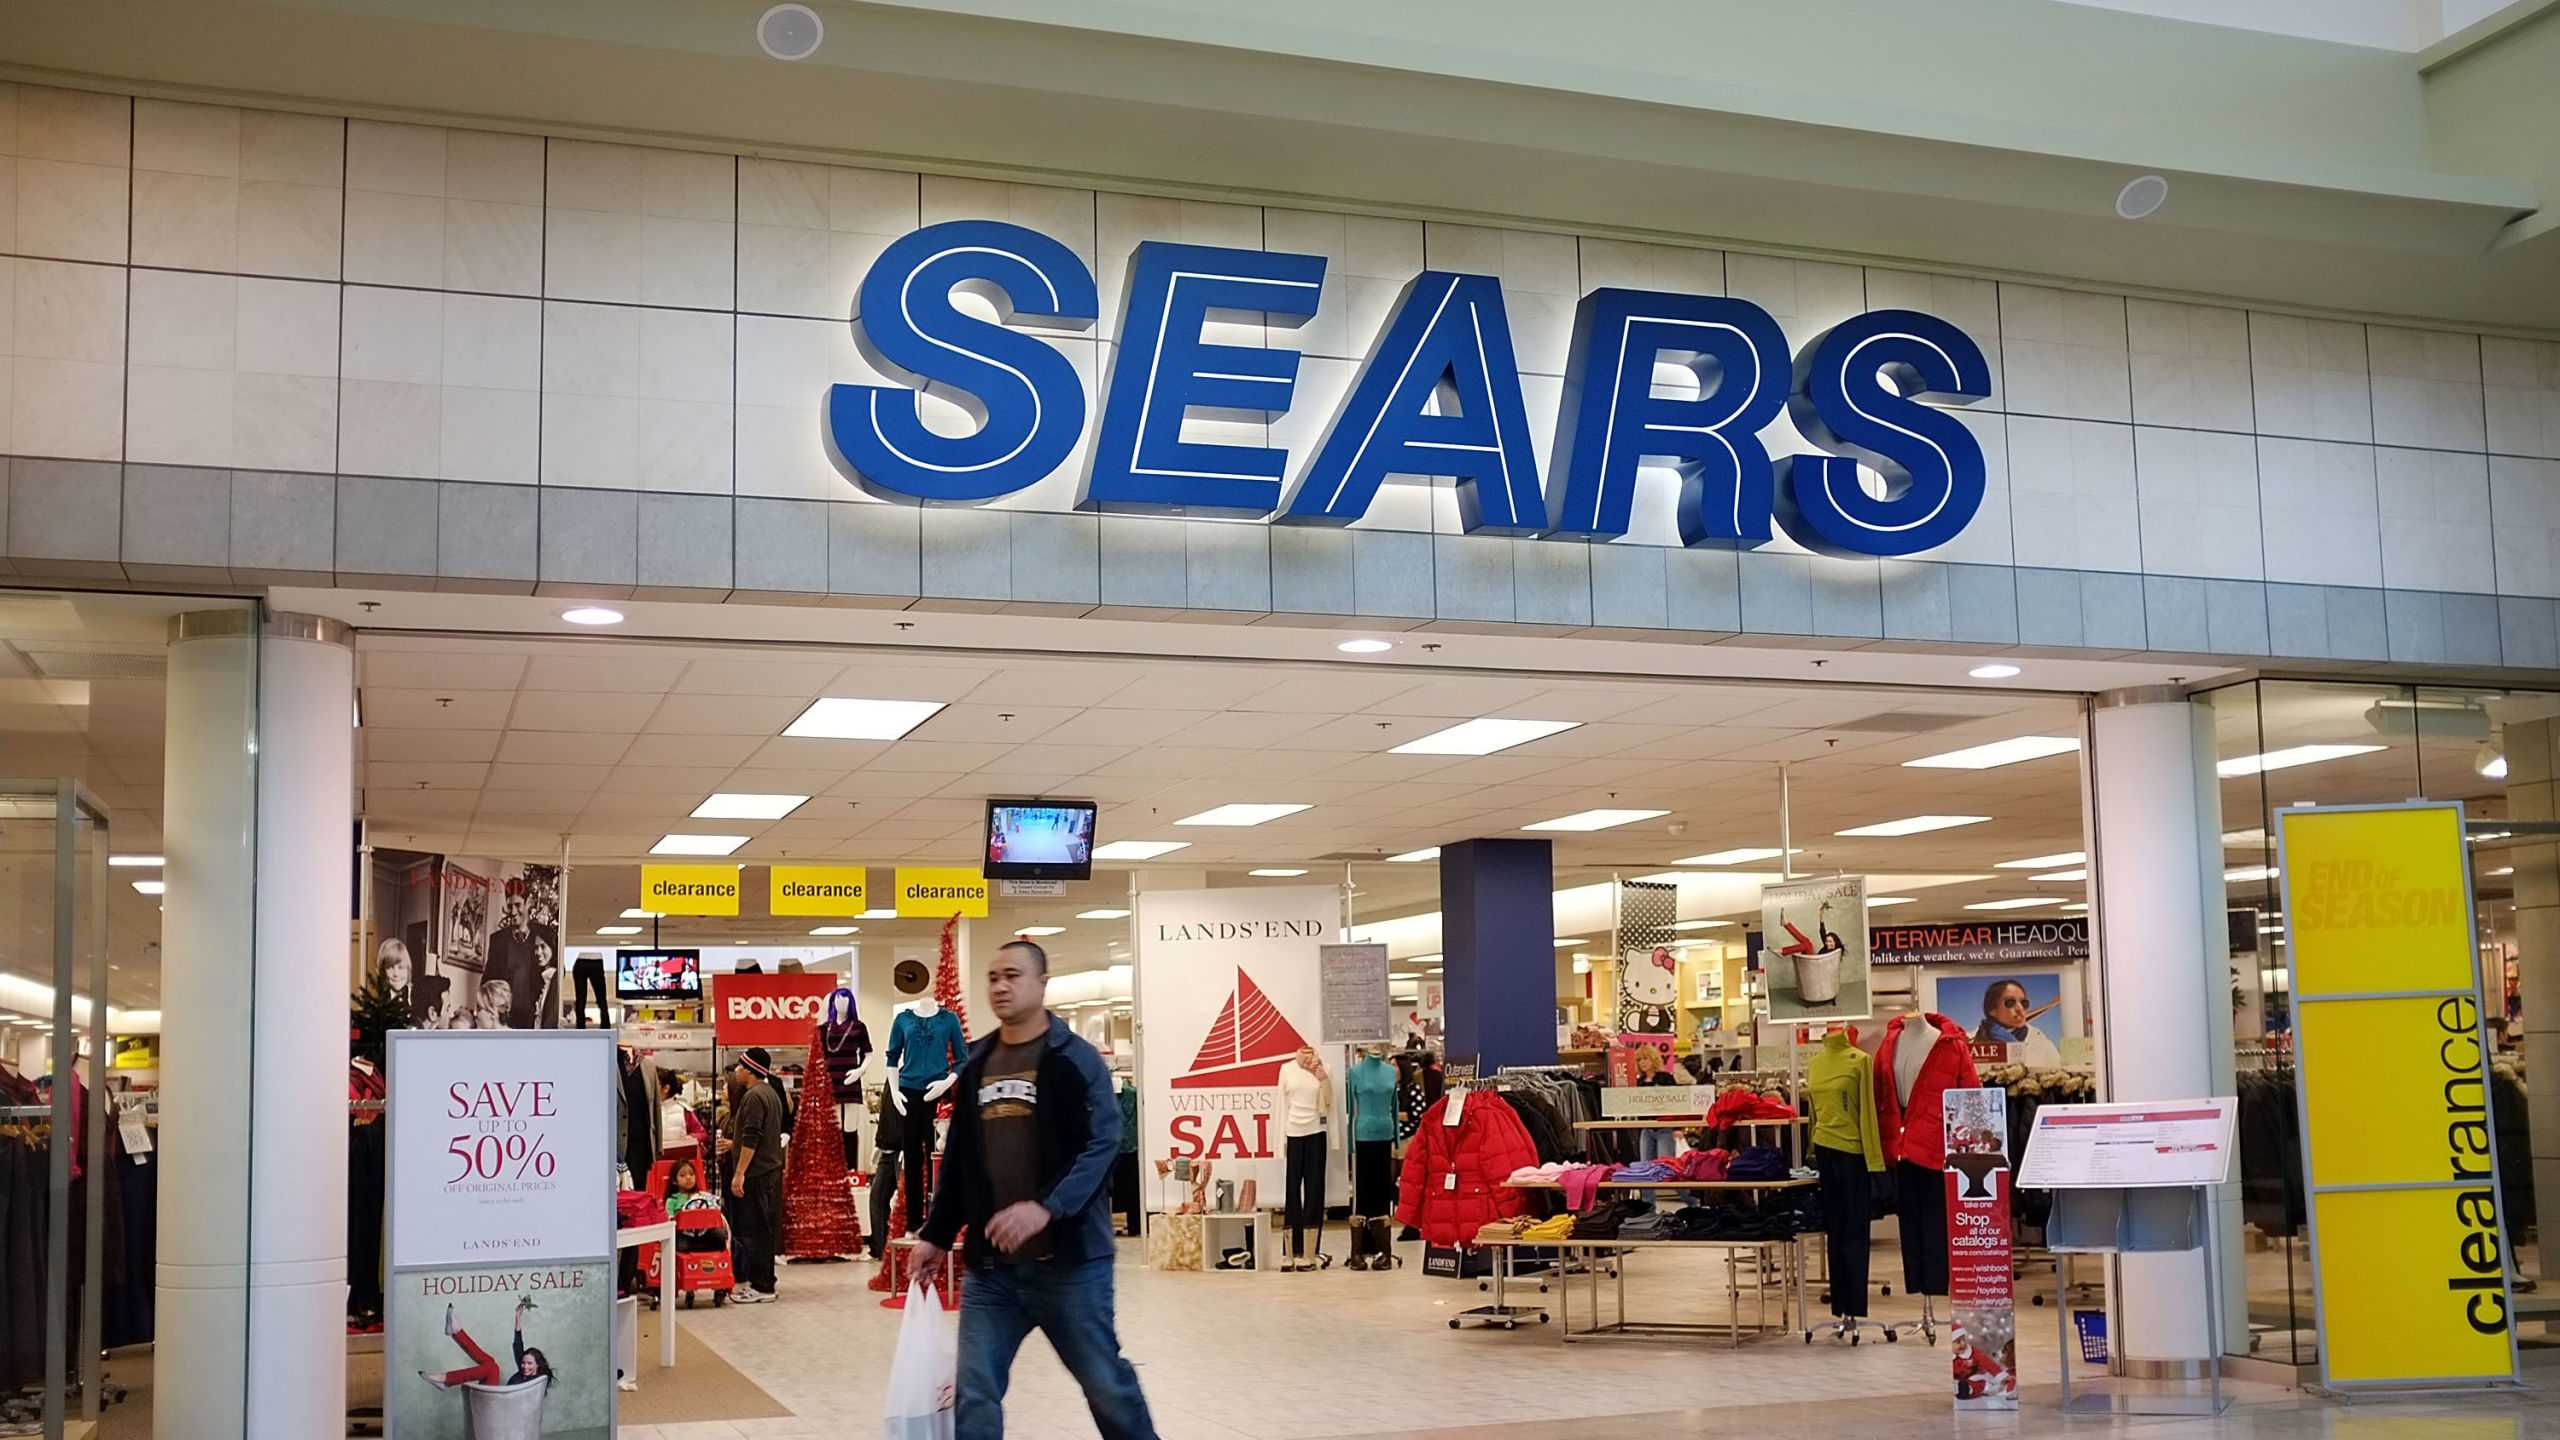 Sears, Kmart announce plans to close several stores by 2018